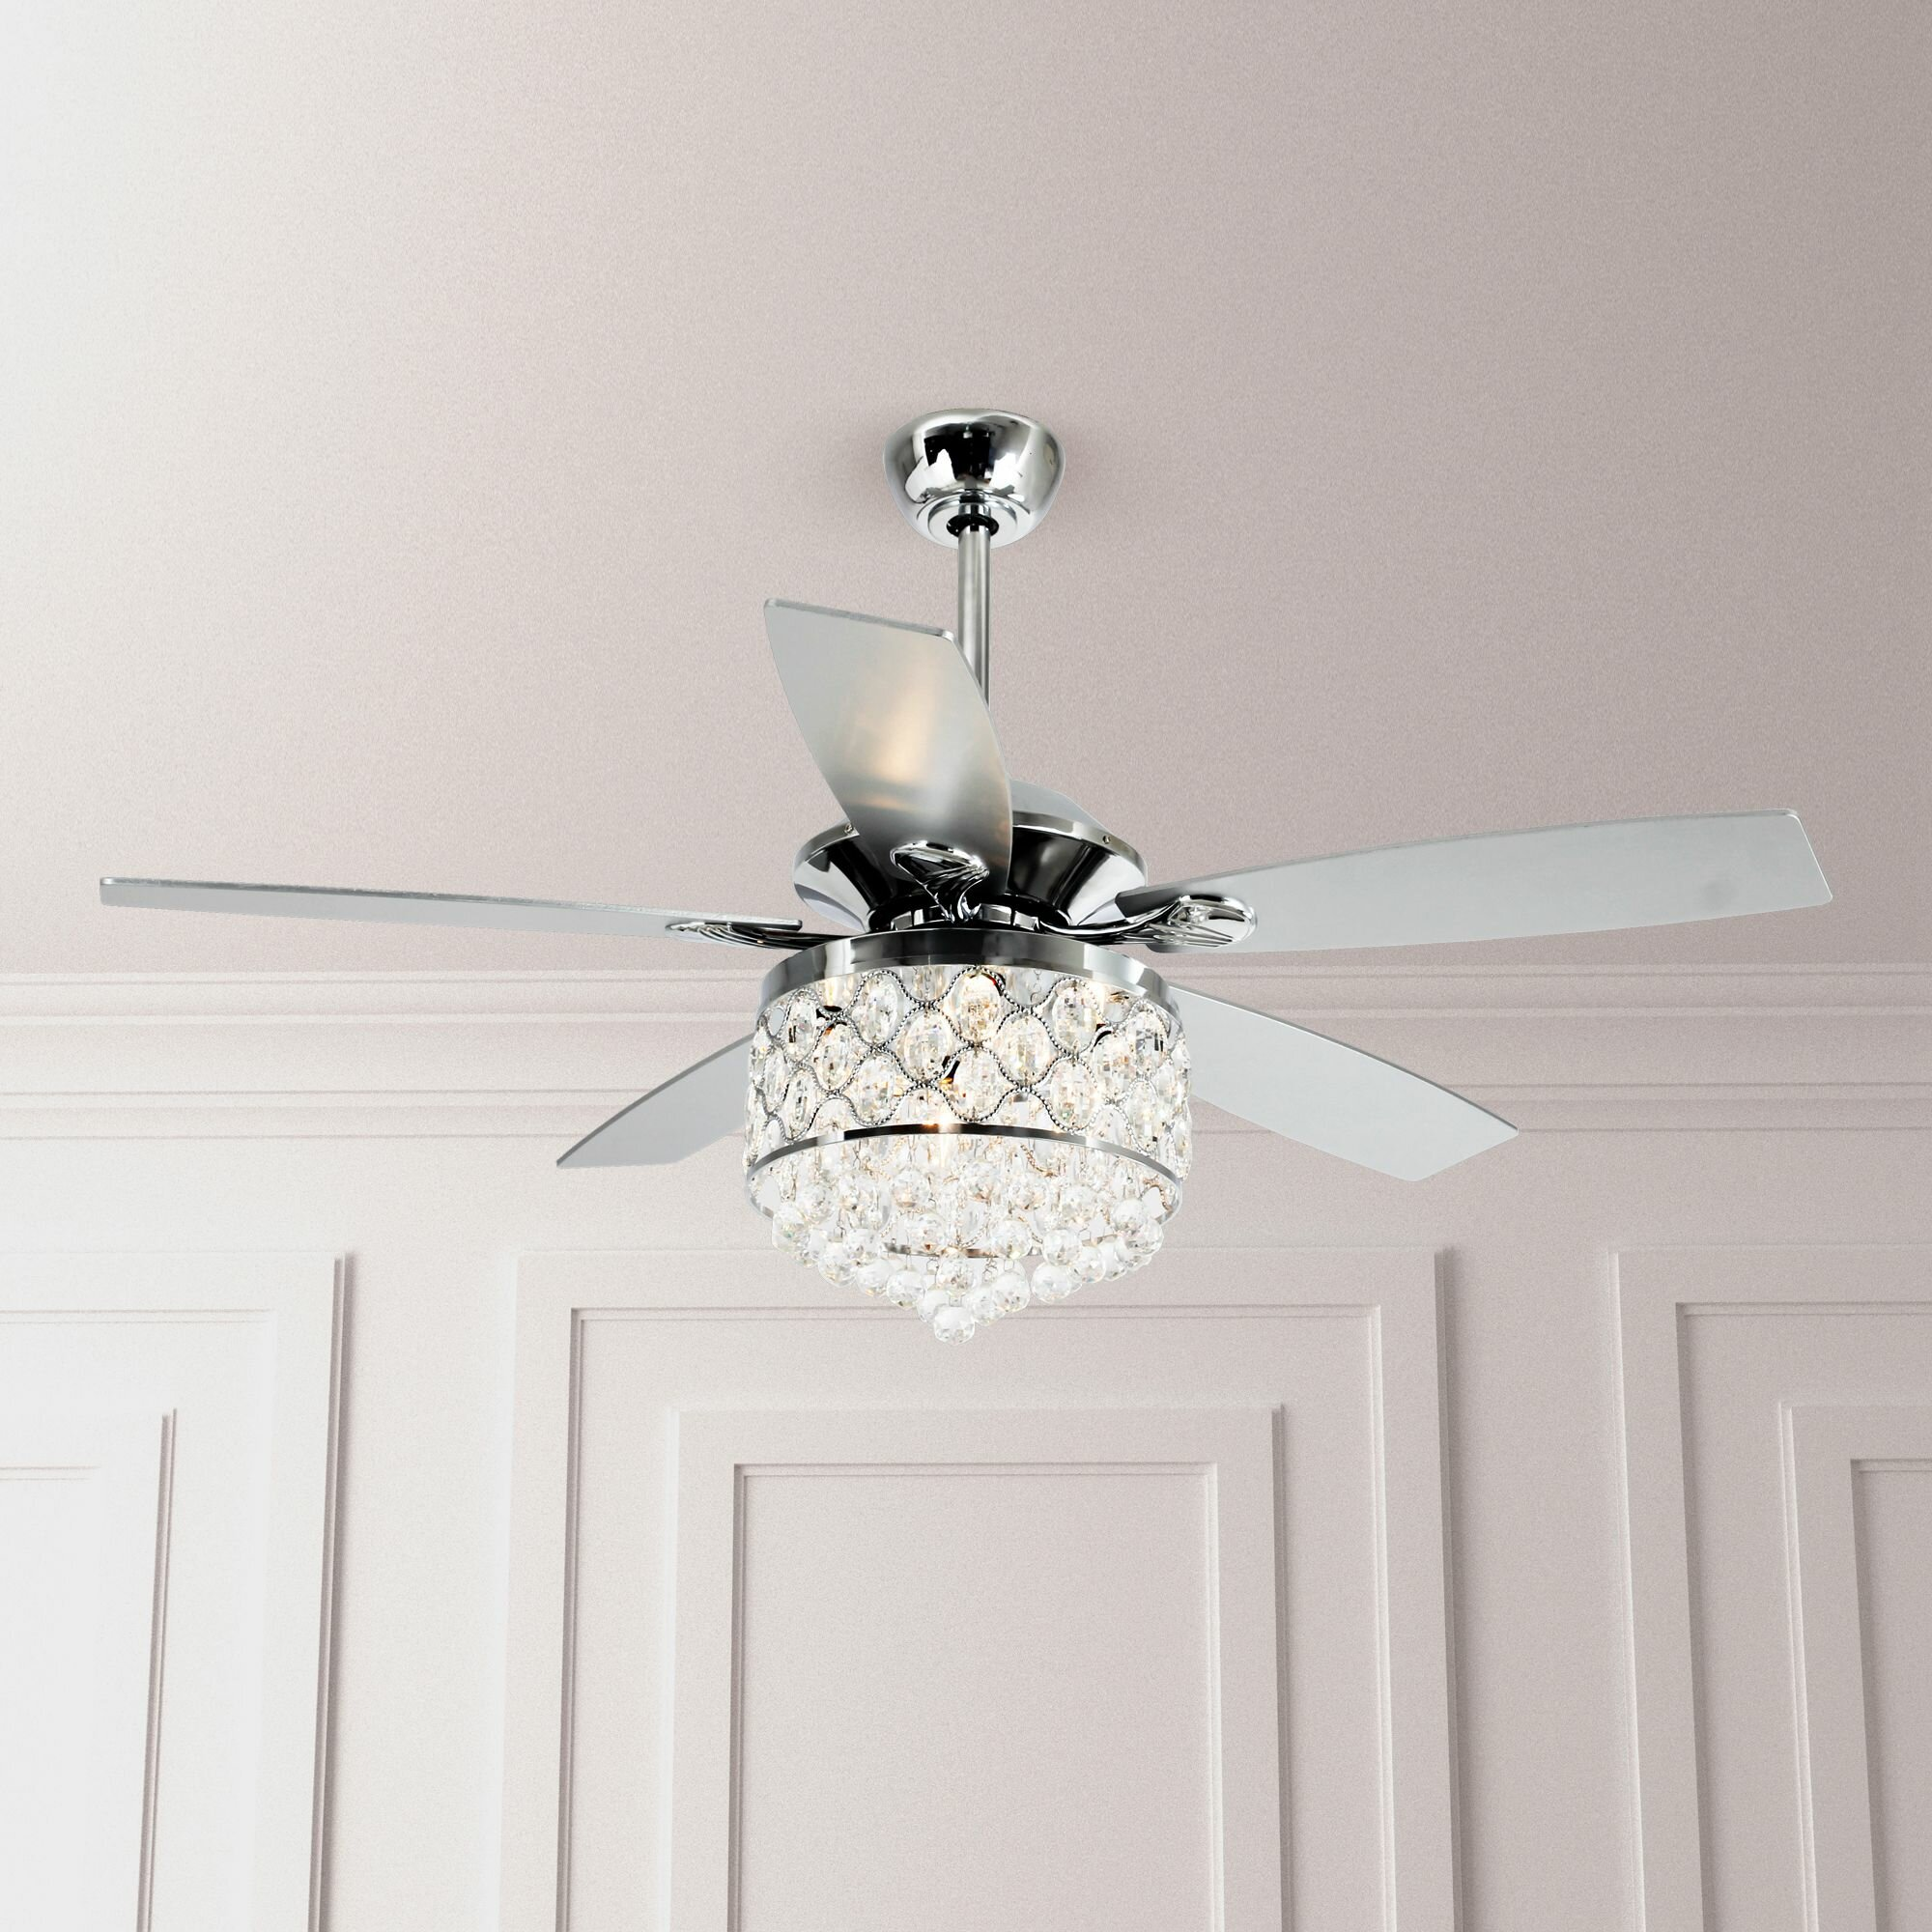 Ceiling Fans Home Garden 52 Remote Control Crystal Chandelier Ceiling Fan Lights 5 Blade Pendant Light Topografiapv Cl